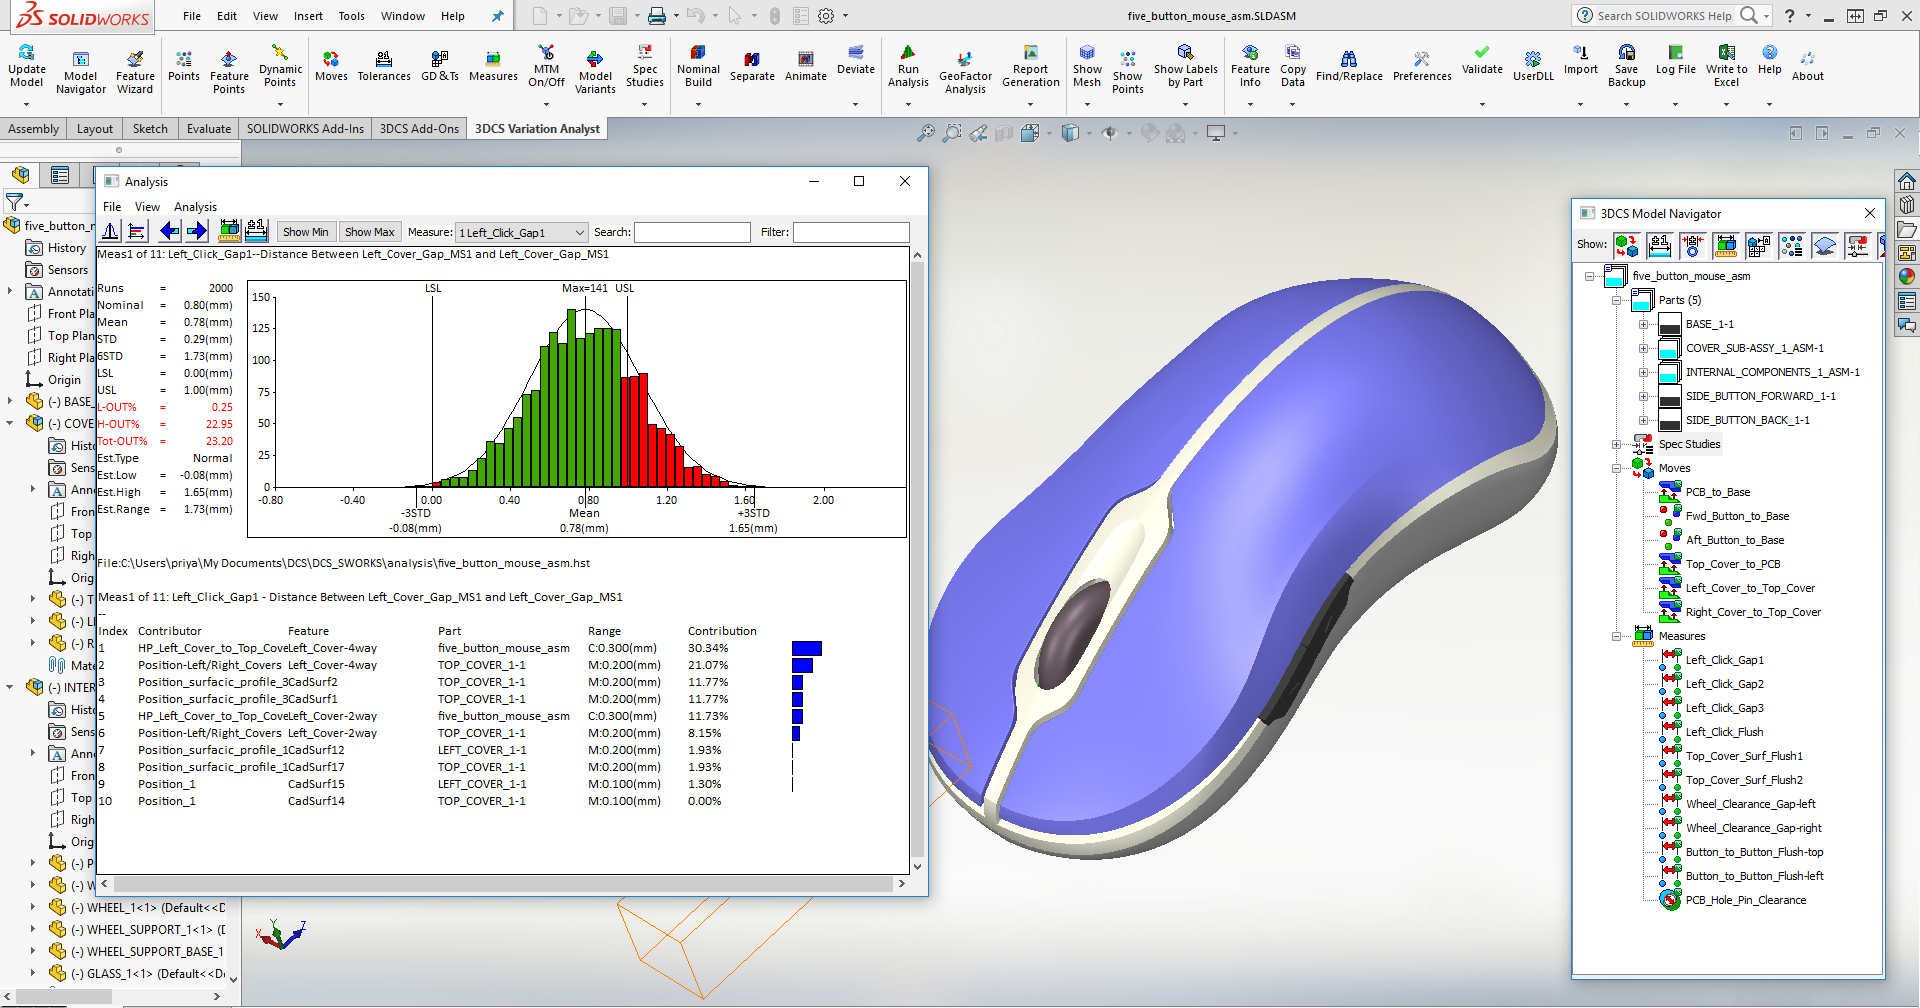 SOLIDWORKS Tolerance Analysis -- See the NEW Integrated Manufacturing Simulation Tool 3DCS